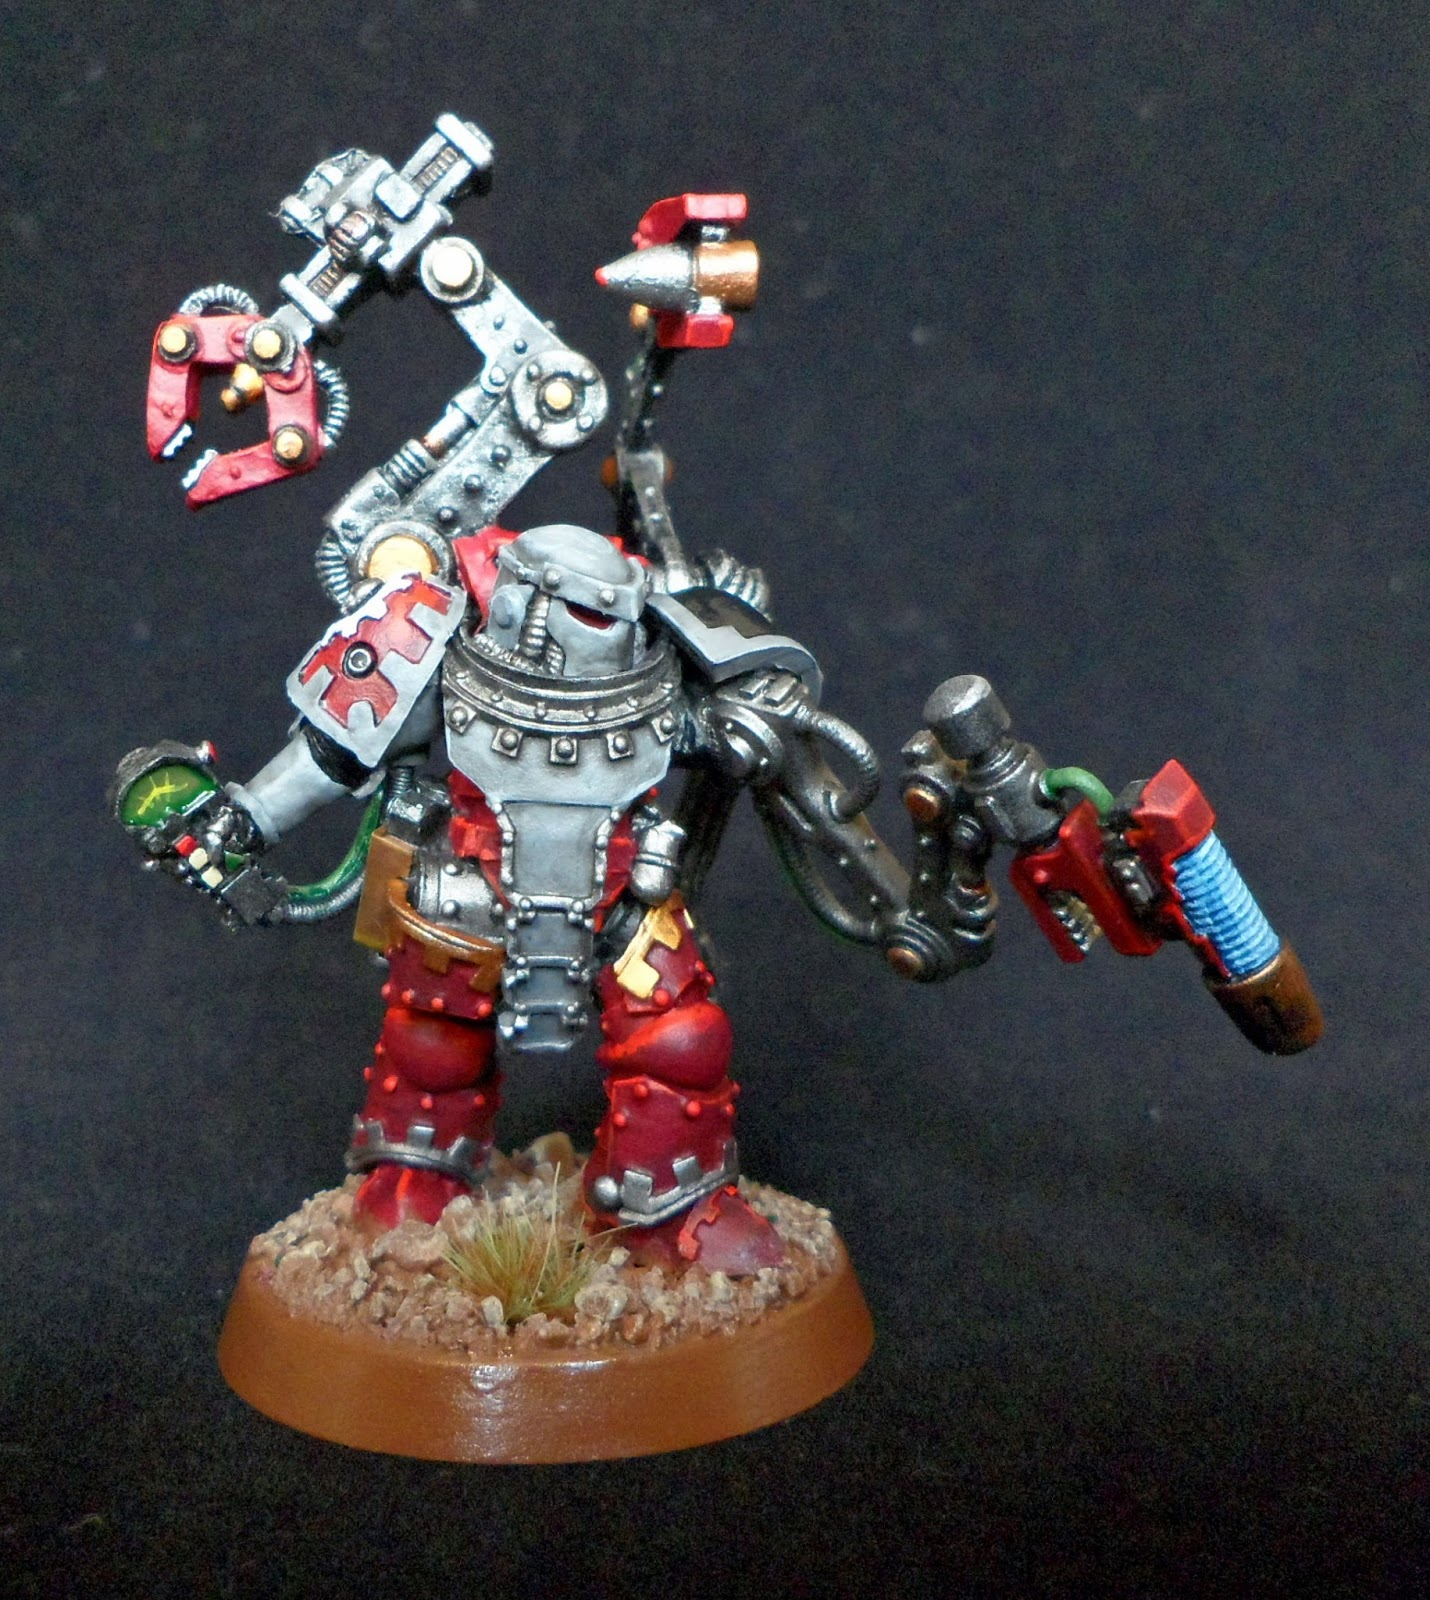 The Gunner Is A Mix Of Parts FW Iron Hands Medusan Immortal Body Techmarine Auspex Arm Onager Dunecrawler Bionic And Pauldron From SM